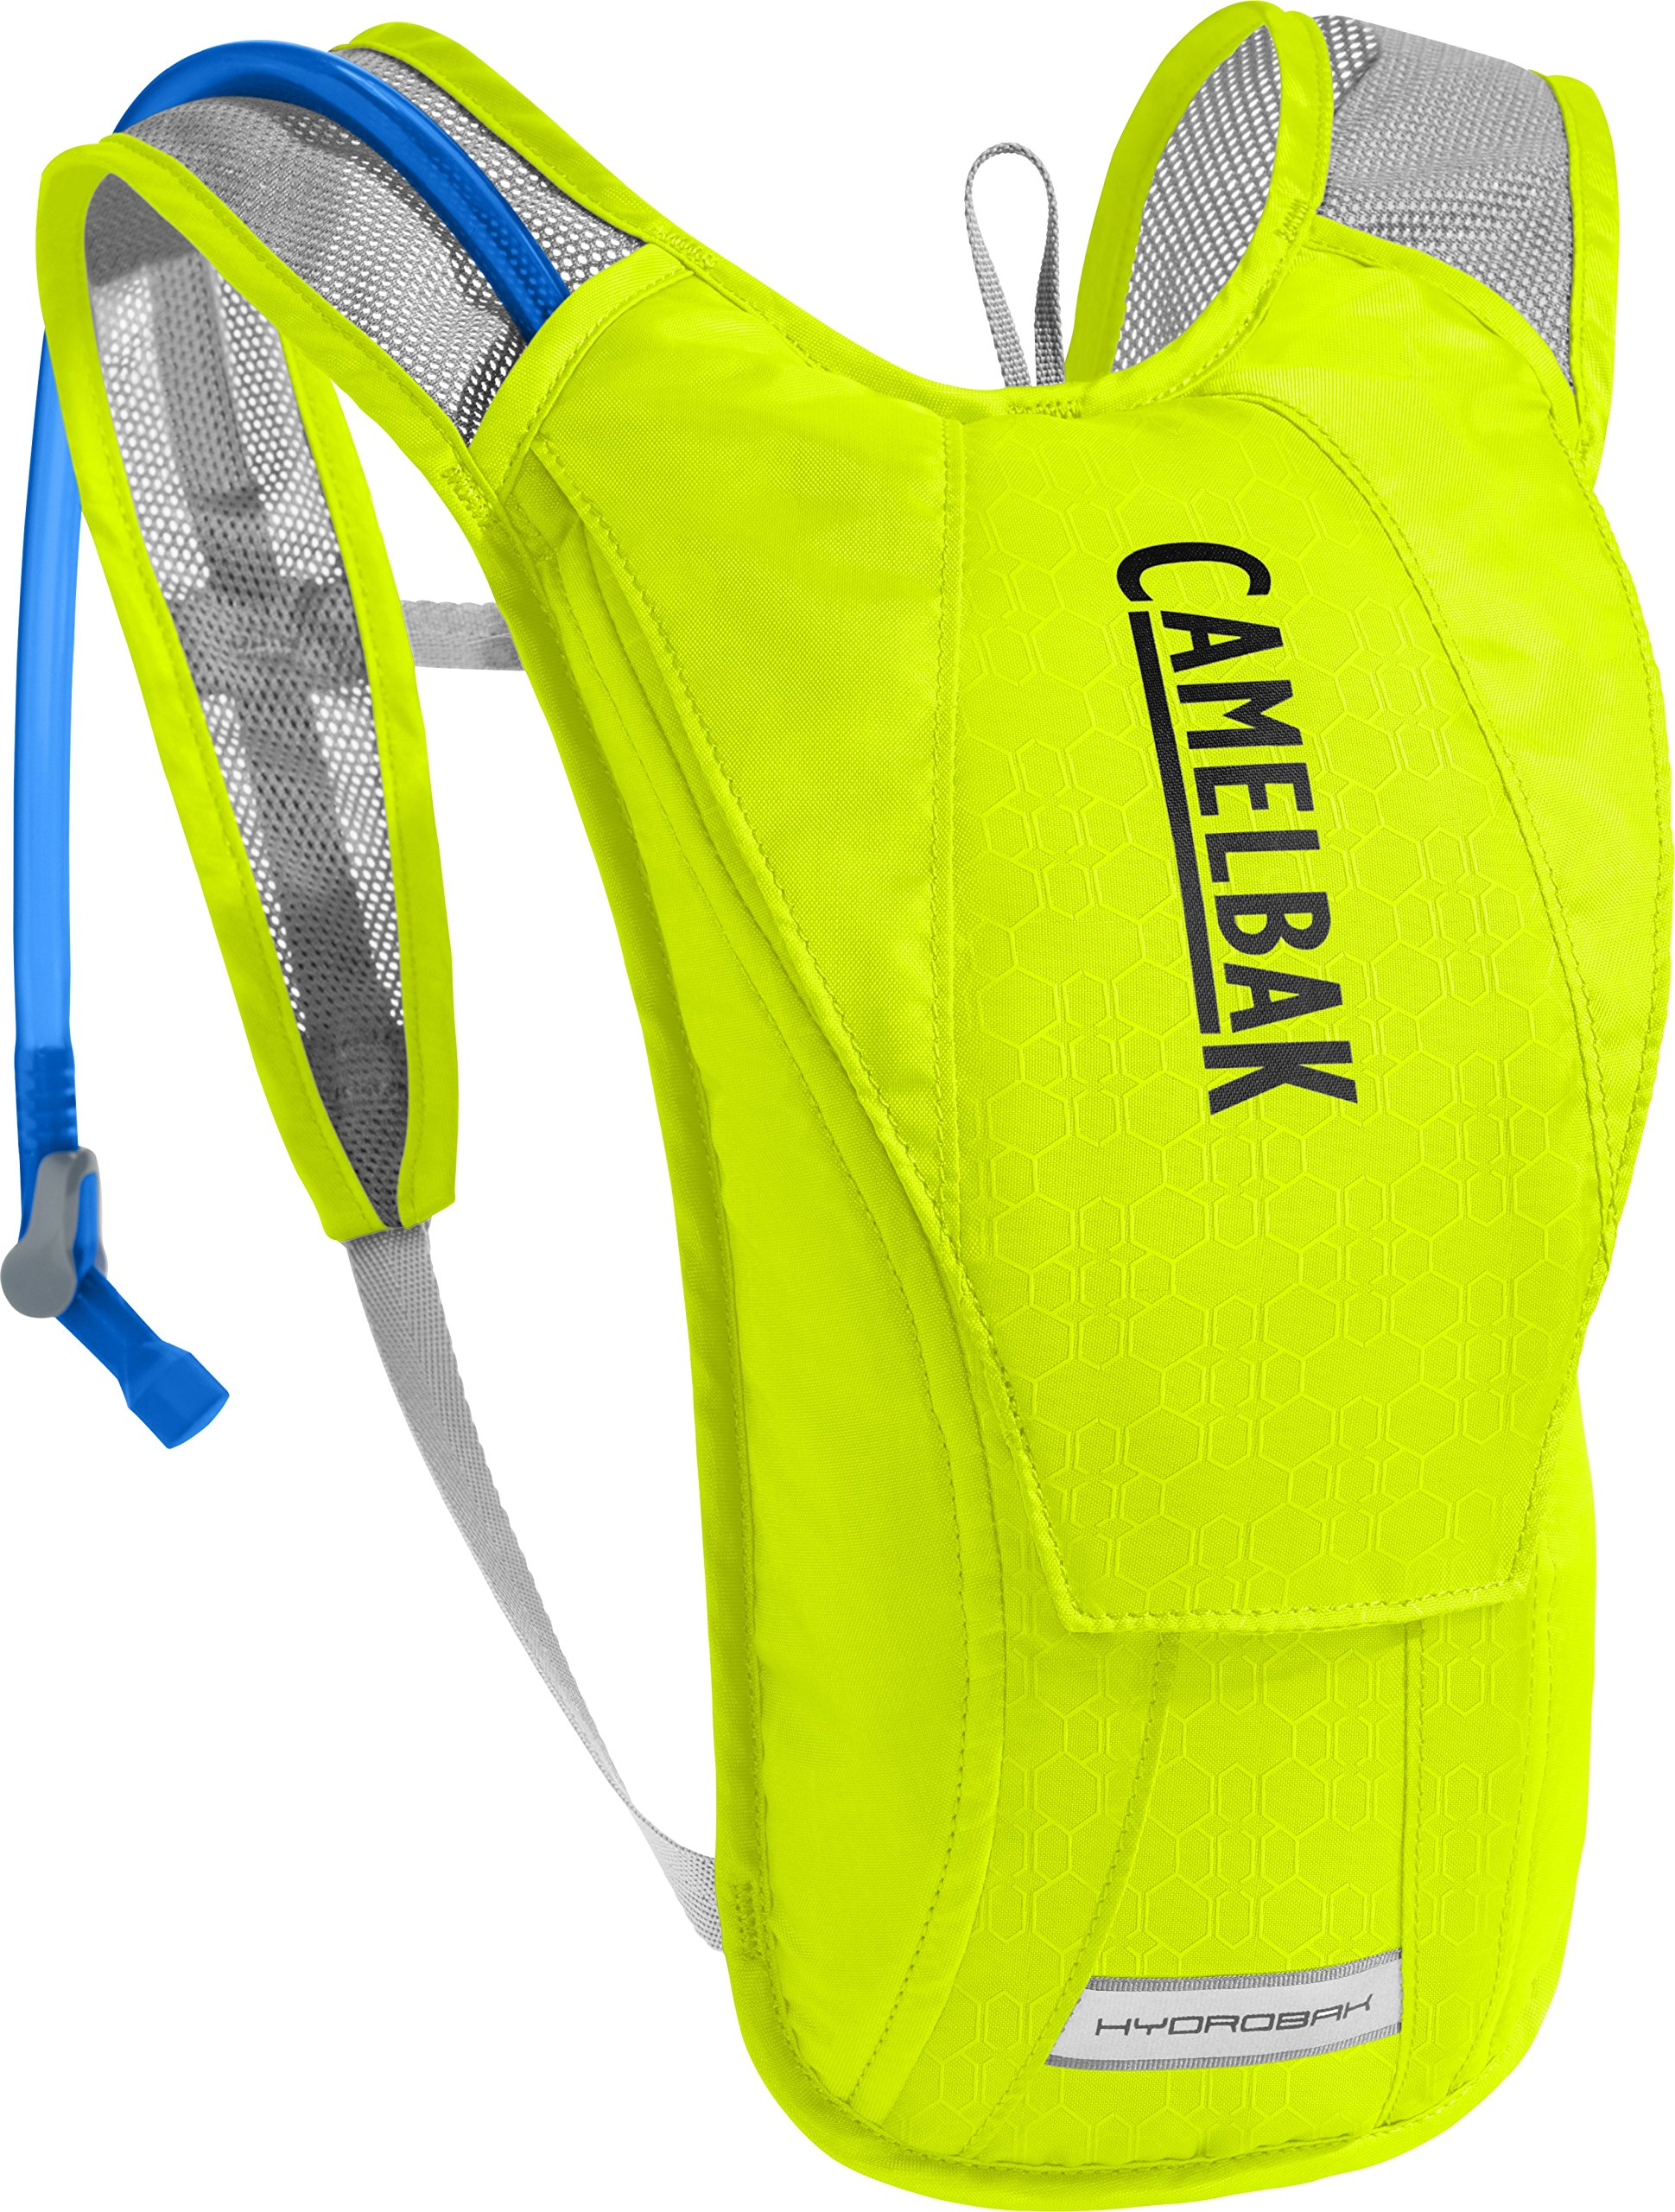 CamelBak HydroBak Crux Reservoir Hydration Pack, Lime Punch/Silver, 1.5 L/50 oz by CamelBak